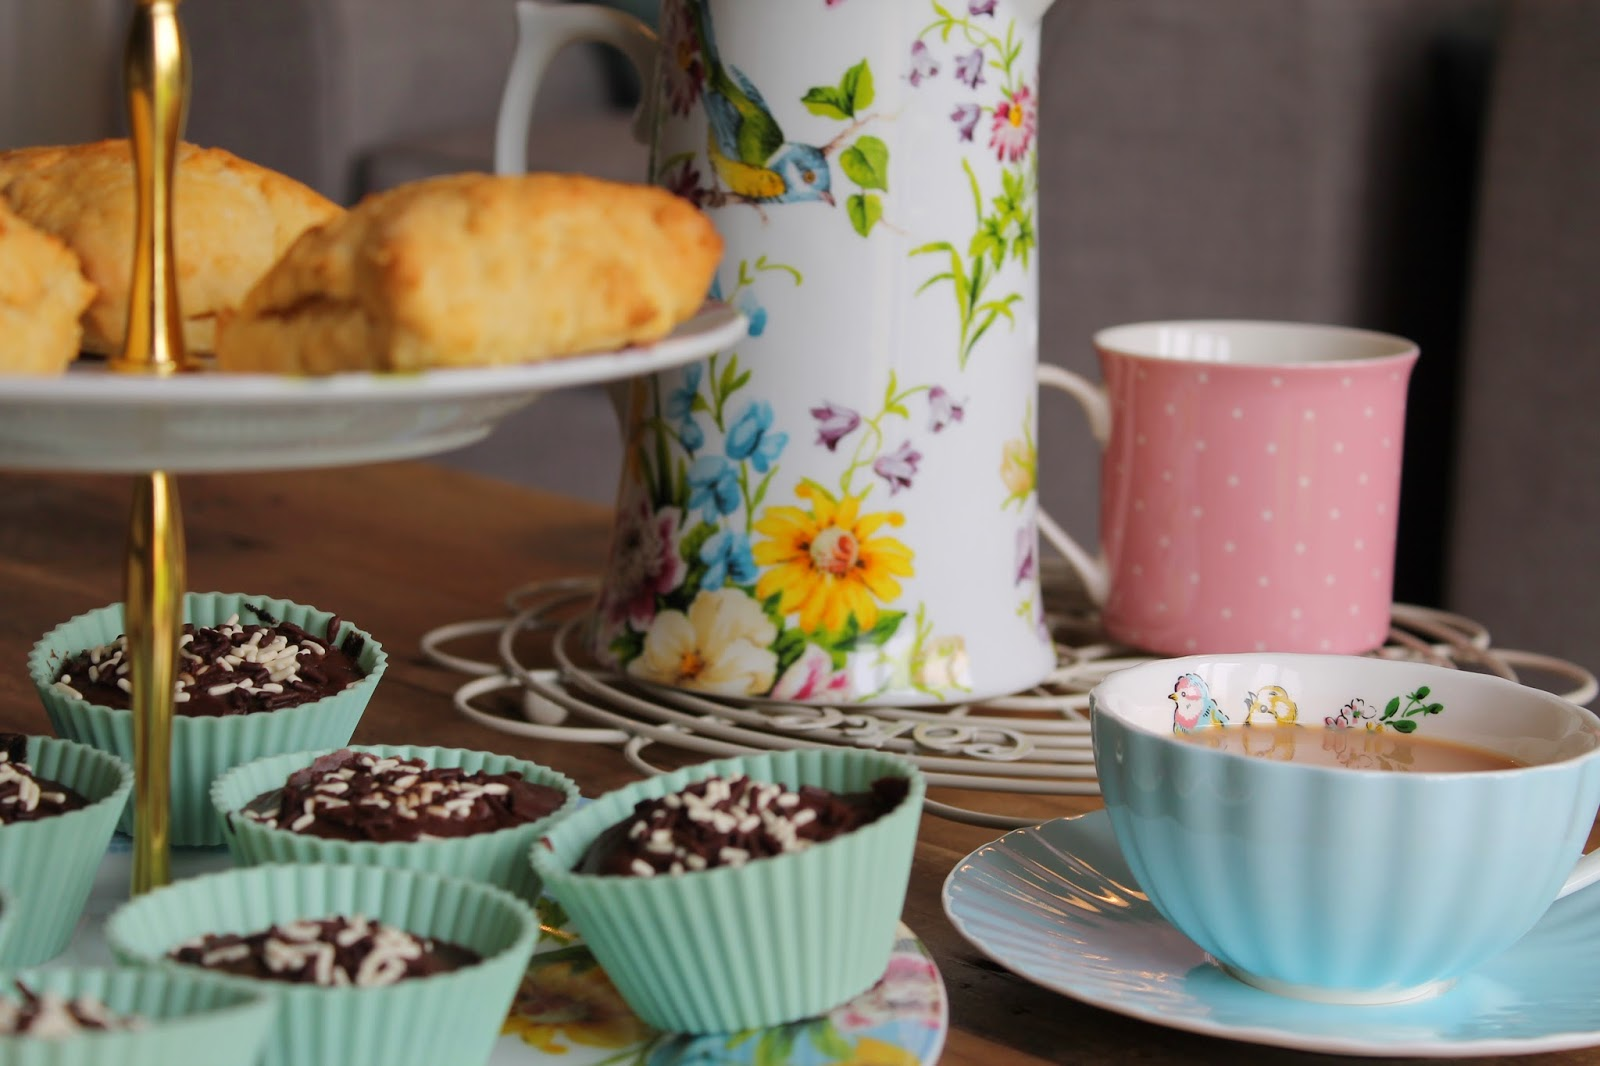 English Table Tea Party Review - Scones, Cooling Rack - Katie Alice, Cupcakes, Cake stand, Tea Cup